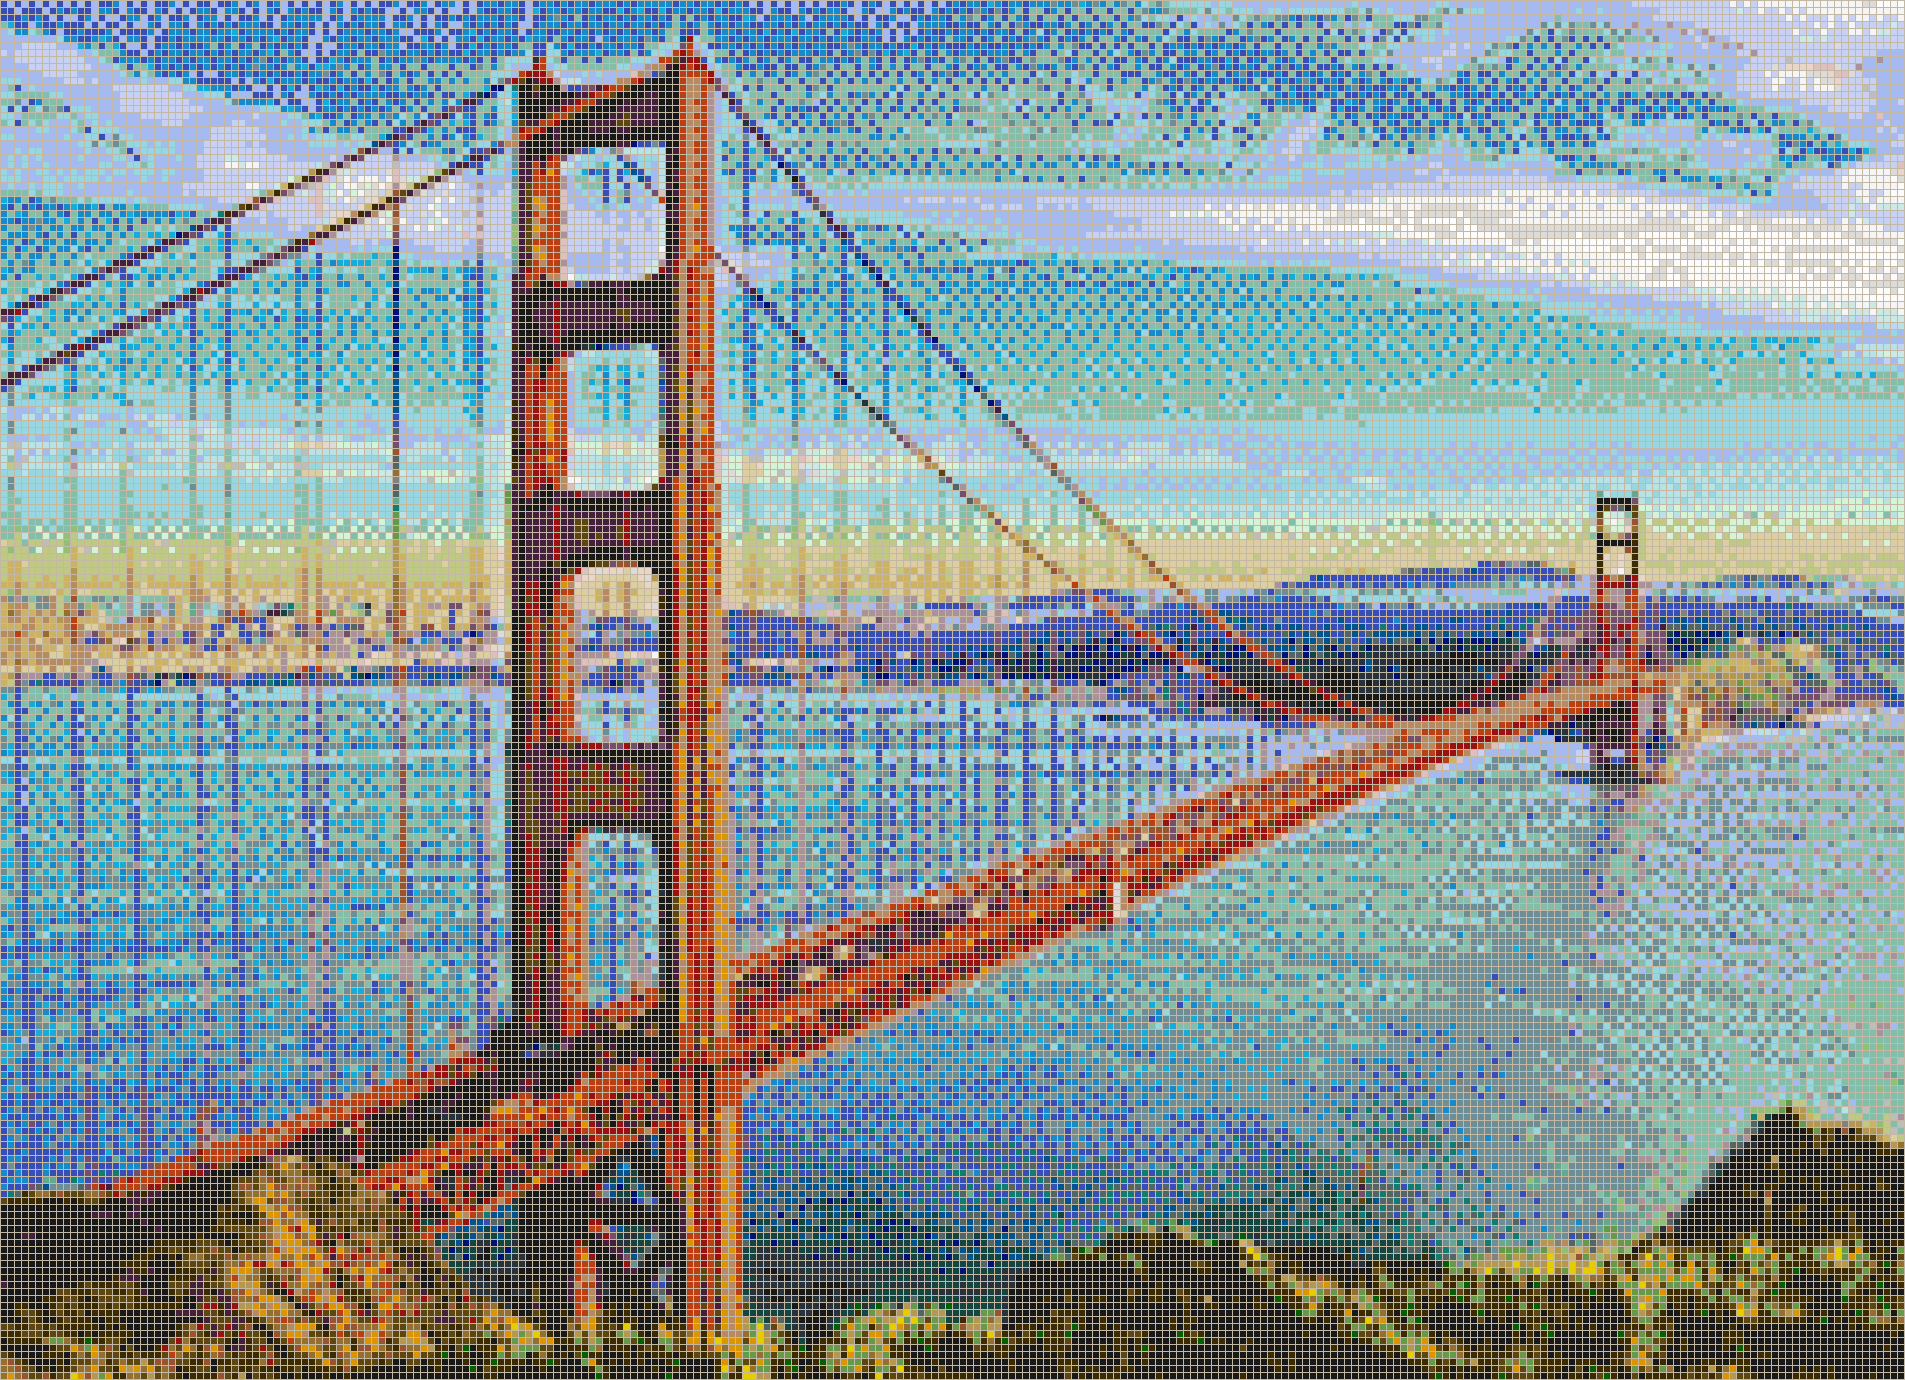 Golden Gate Bridge from Marin Headlands - Mosaic Tile Picture Art